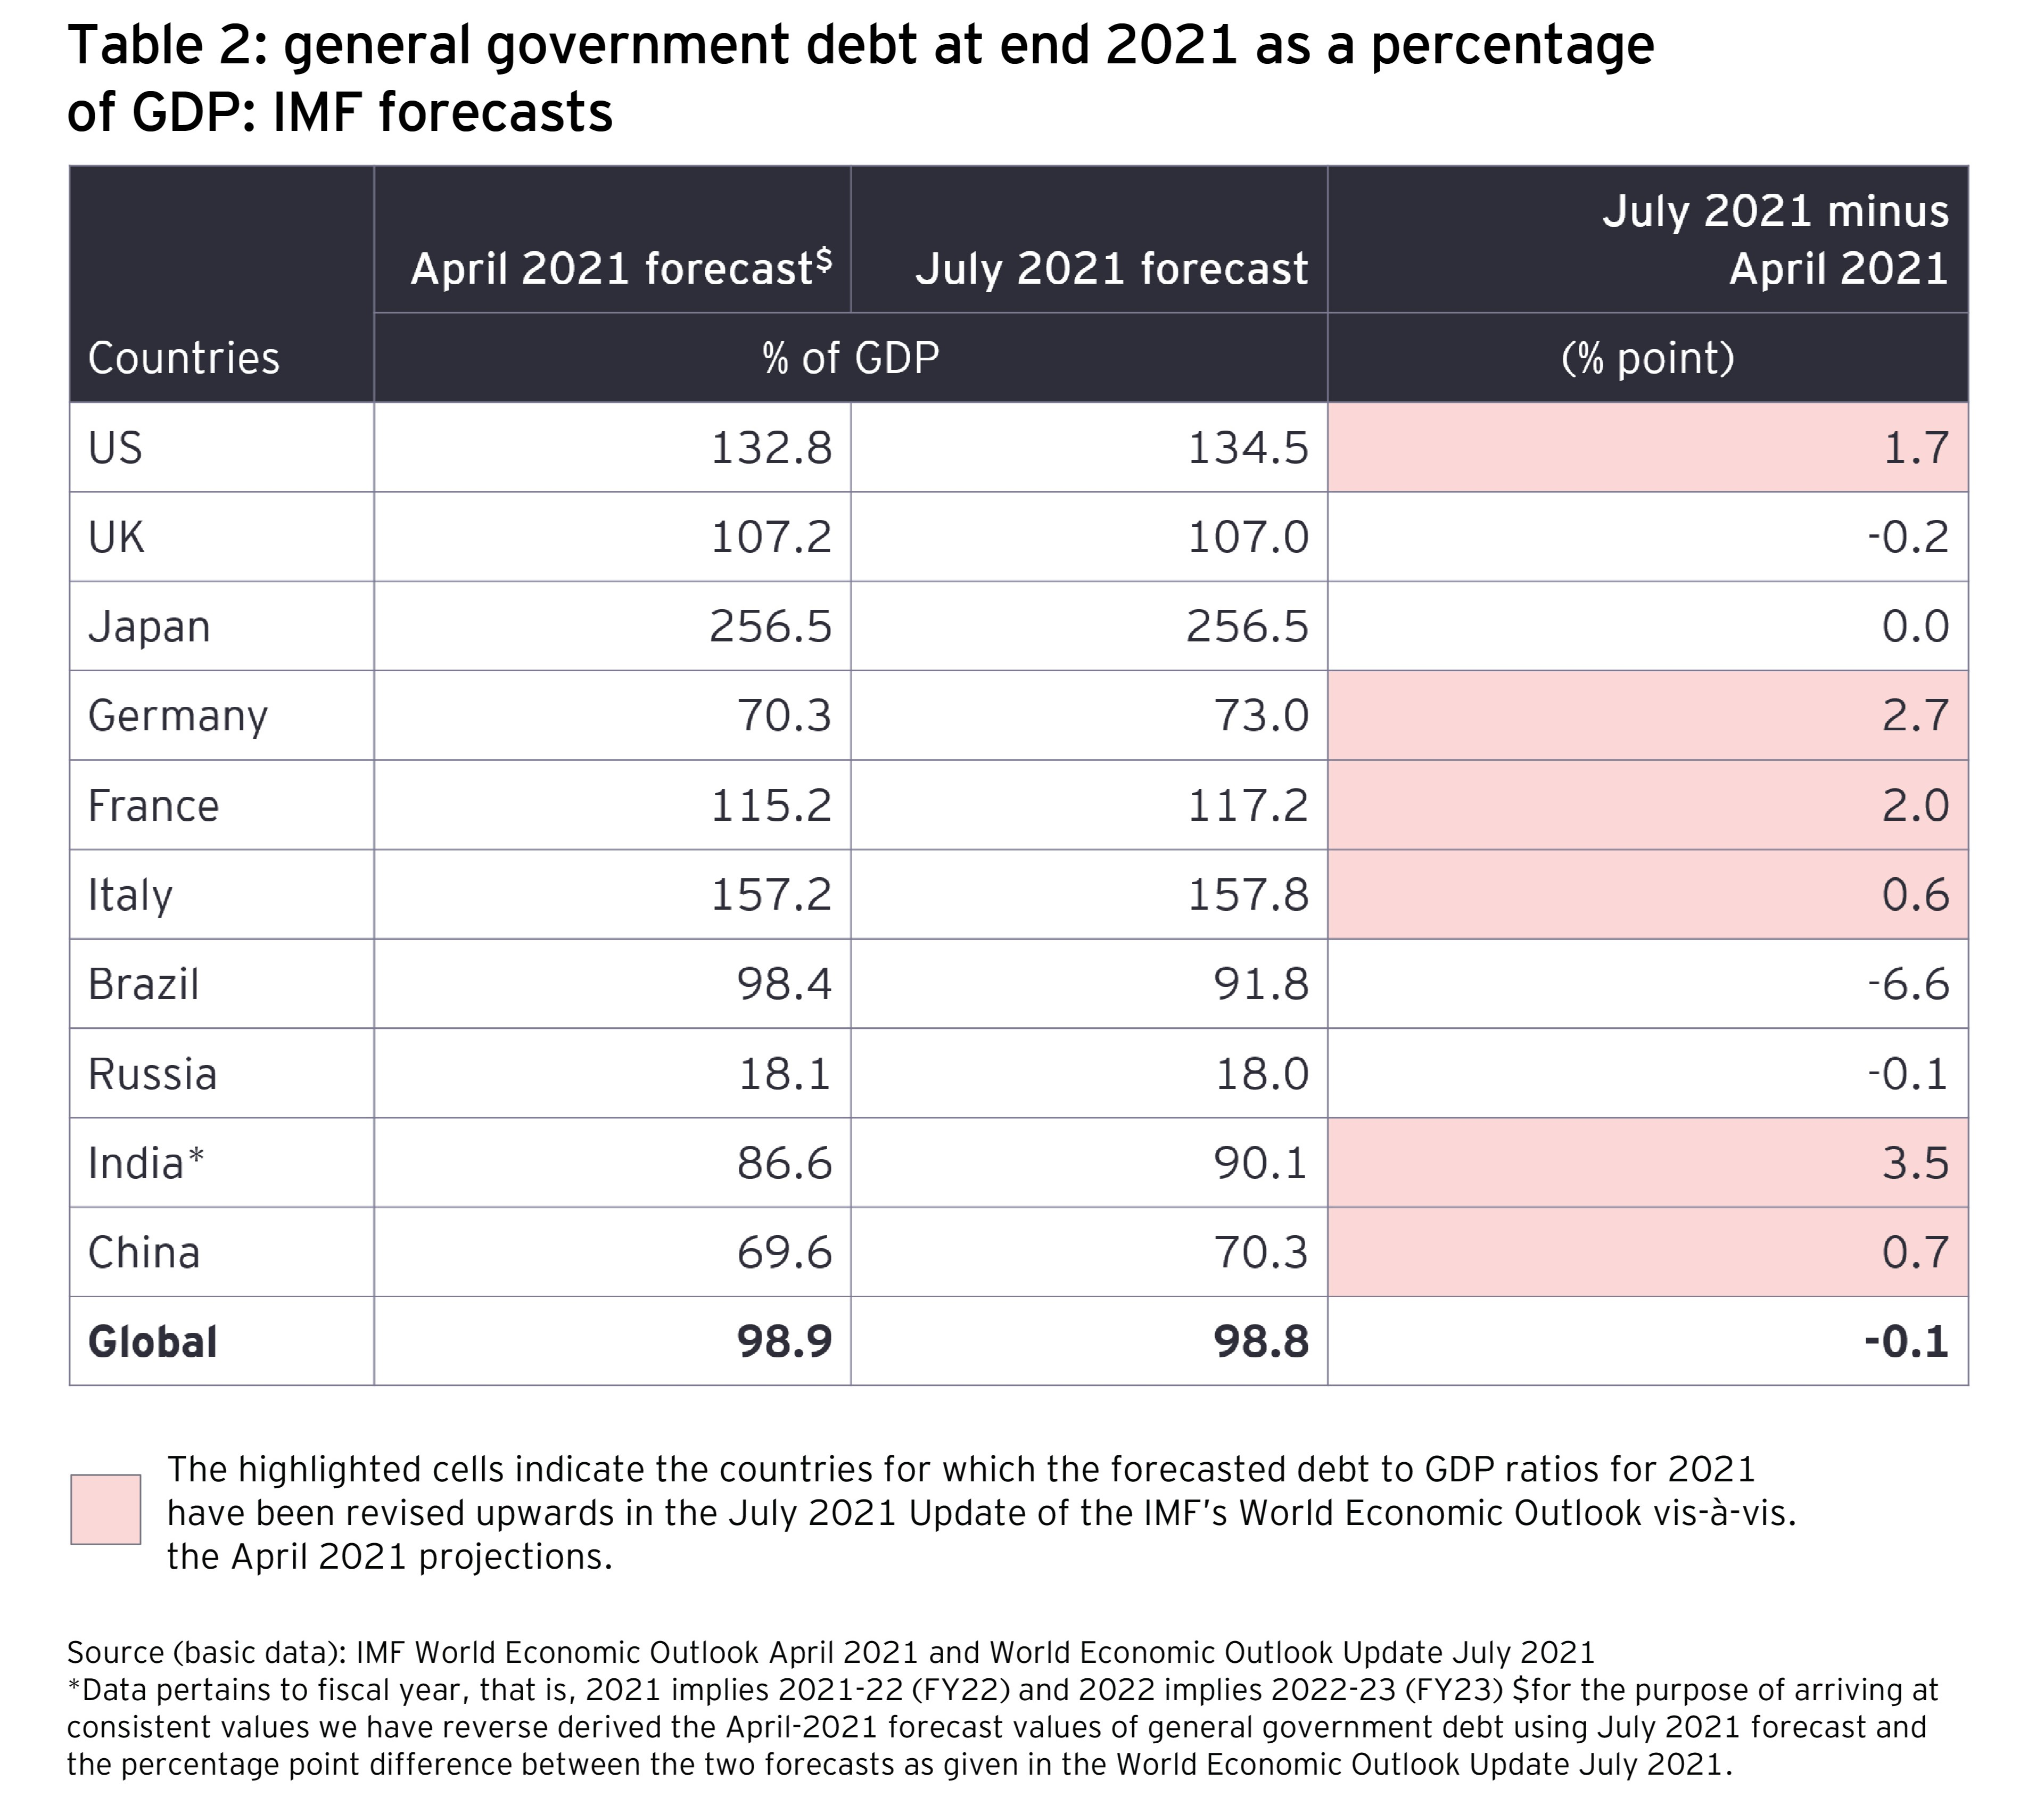 Table 2: general government debt at end 2021 as a percentage of GDP: IMF forecasts